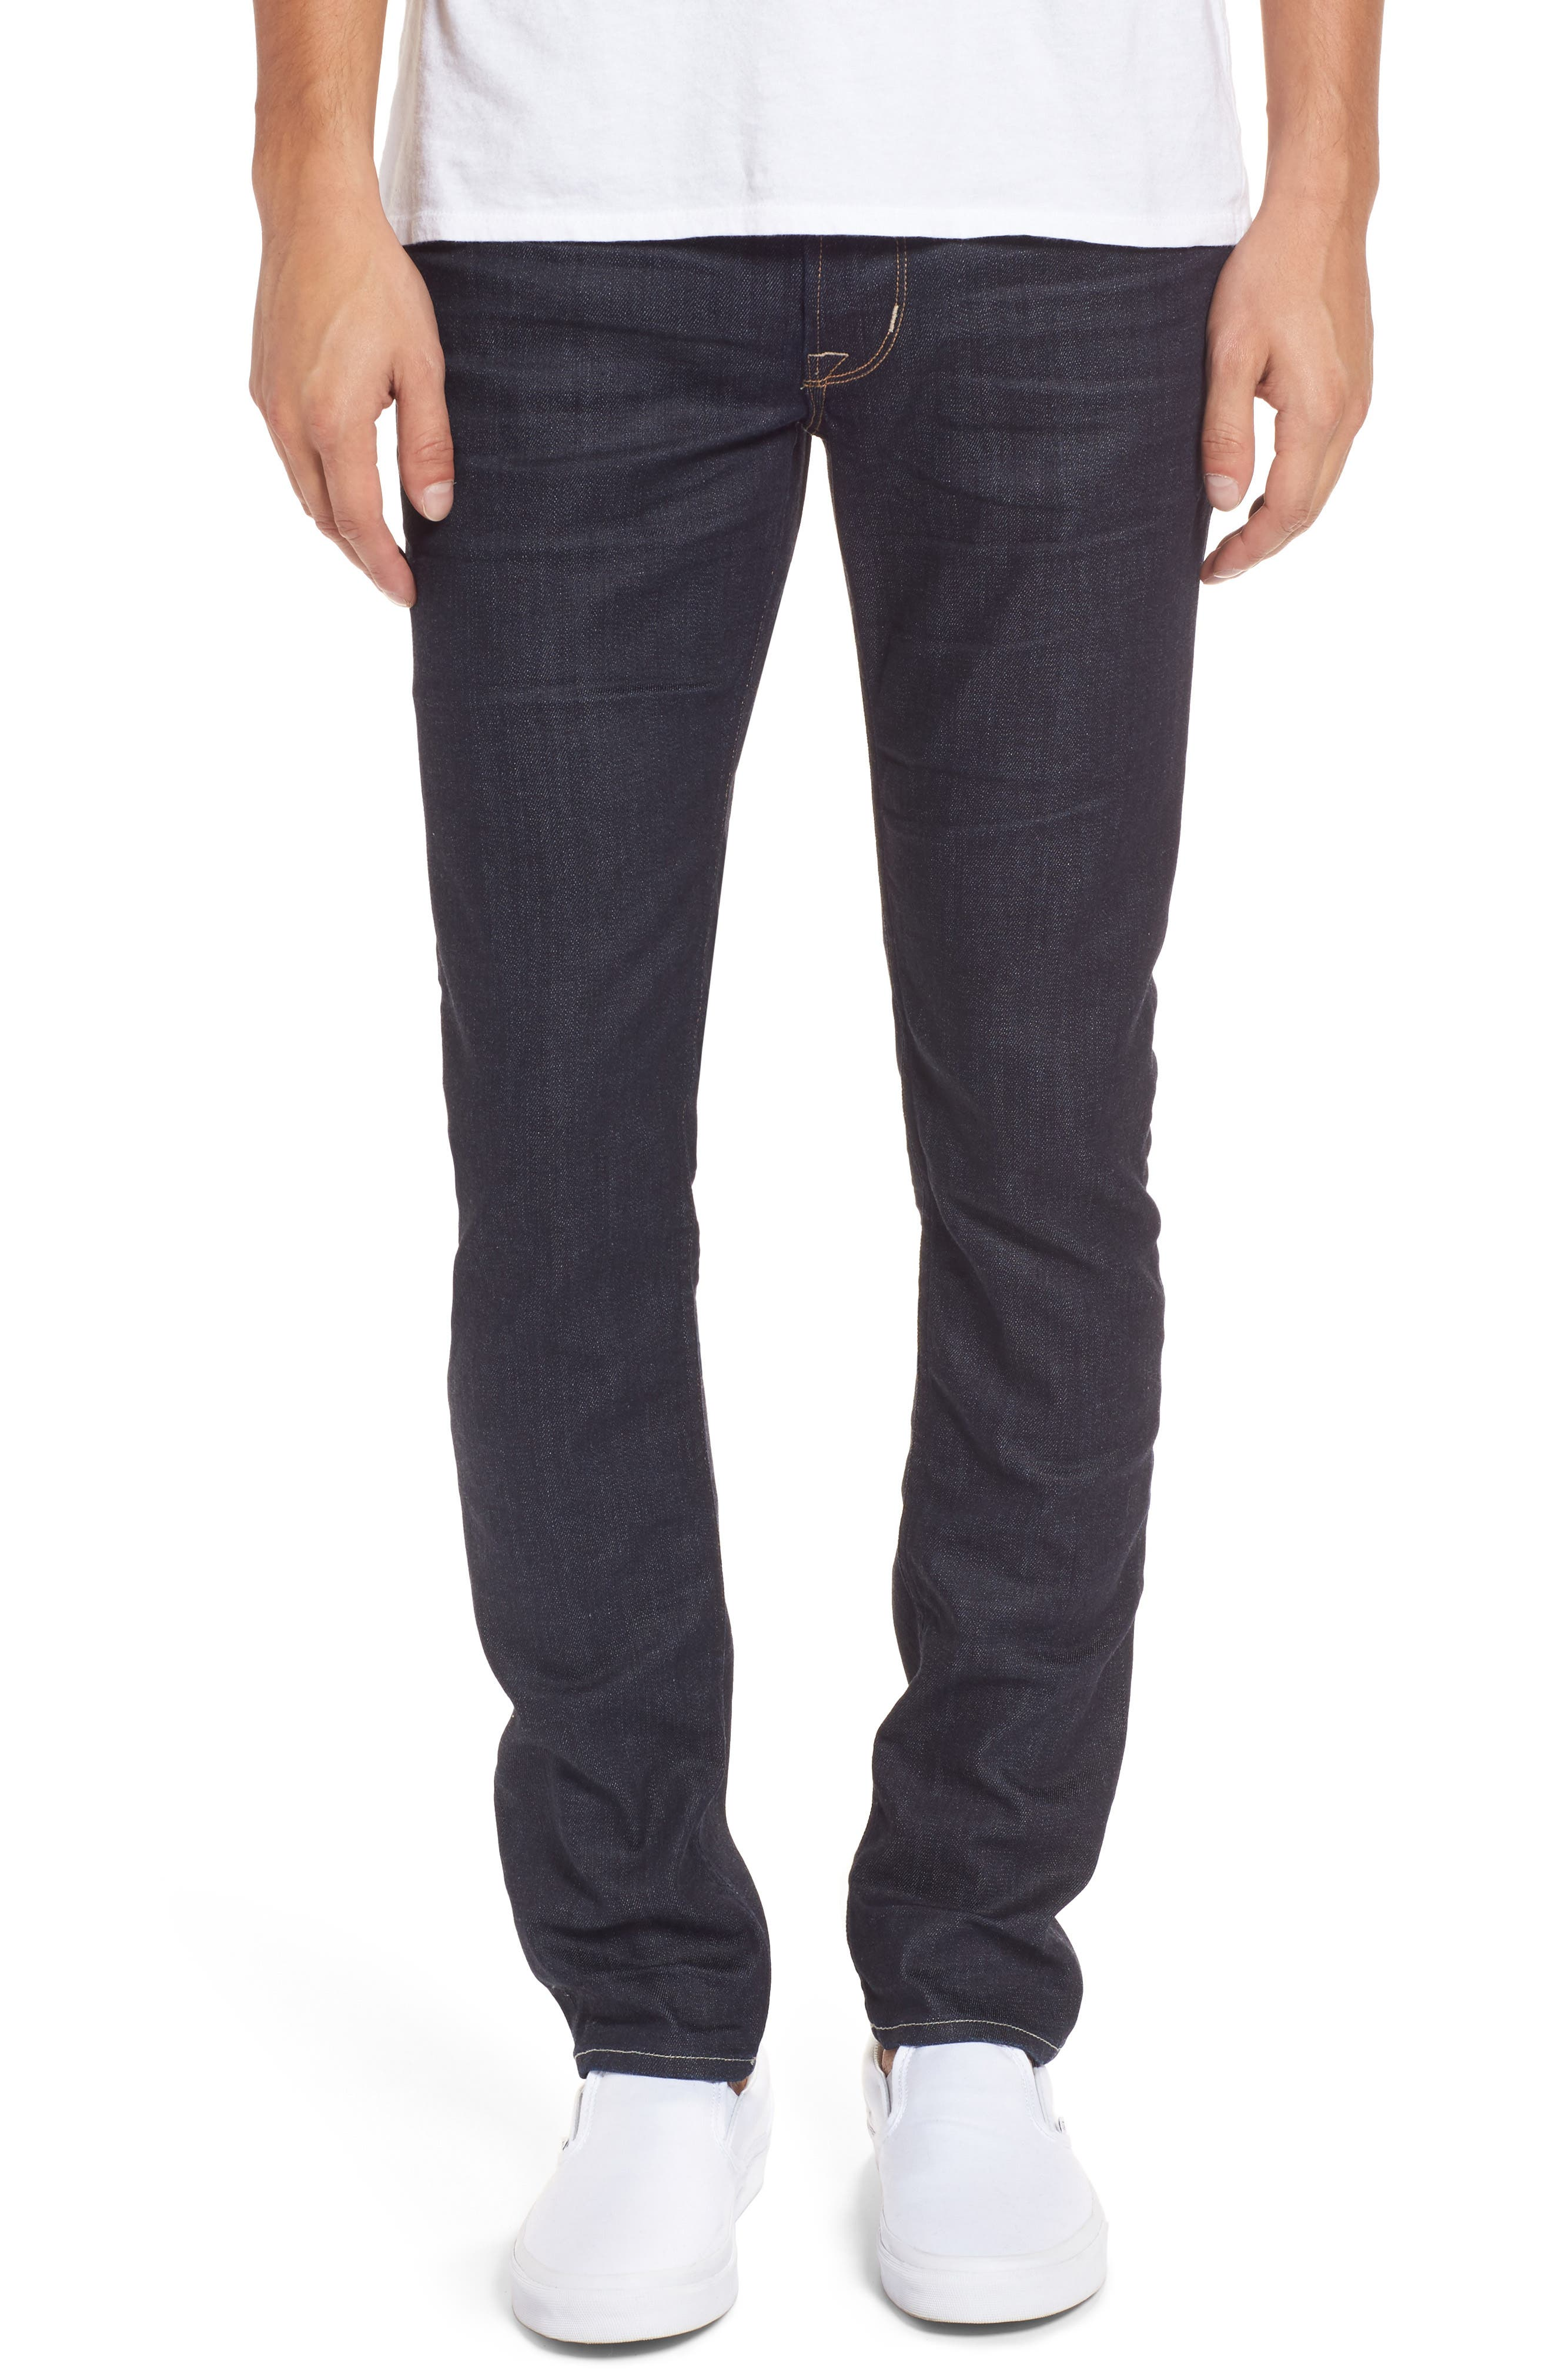 Hudson Axl Skinny Fit Jeans,                         Main,                         color, 420